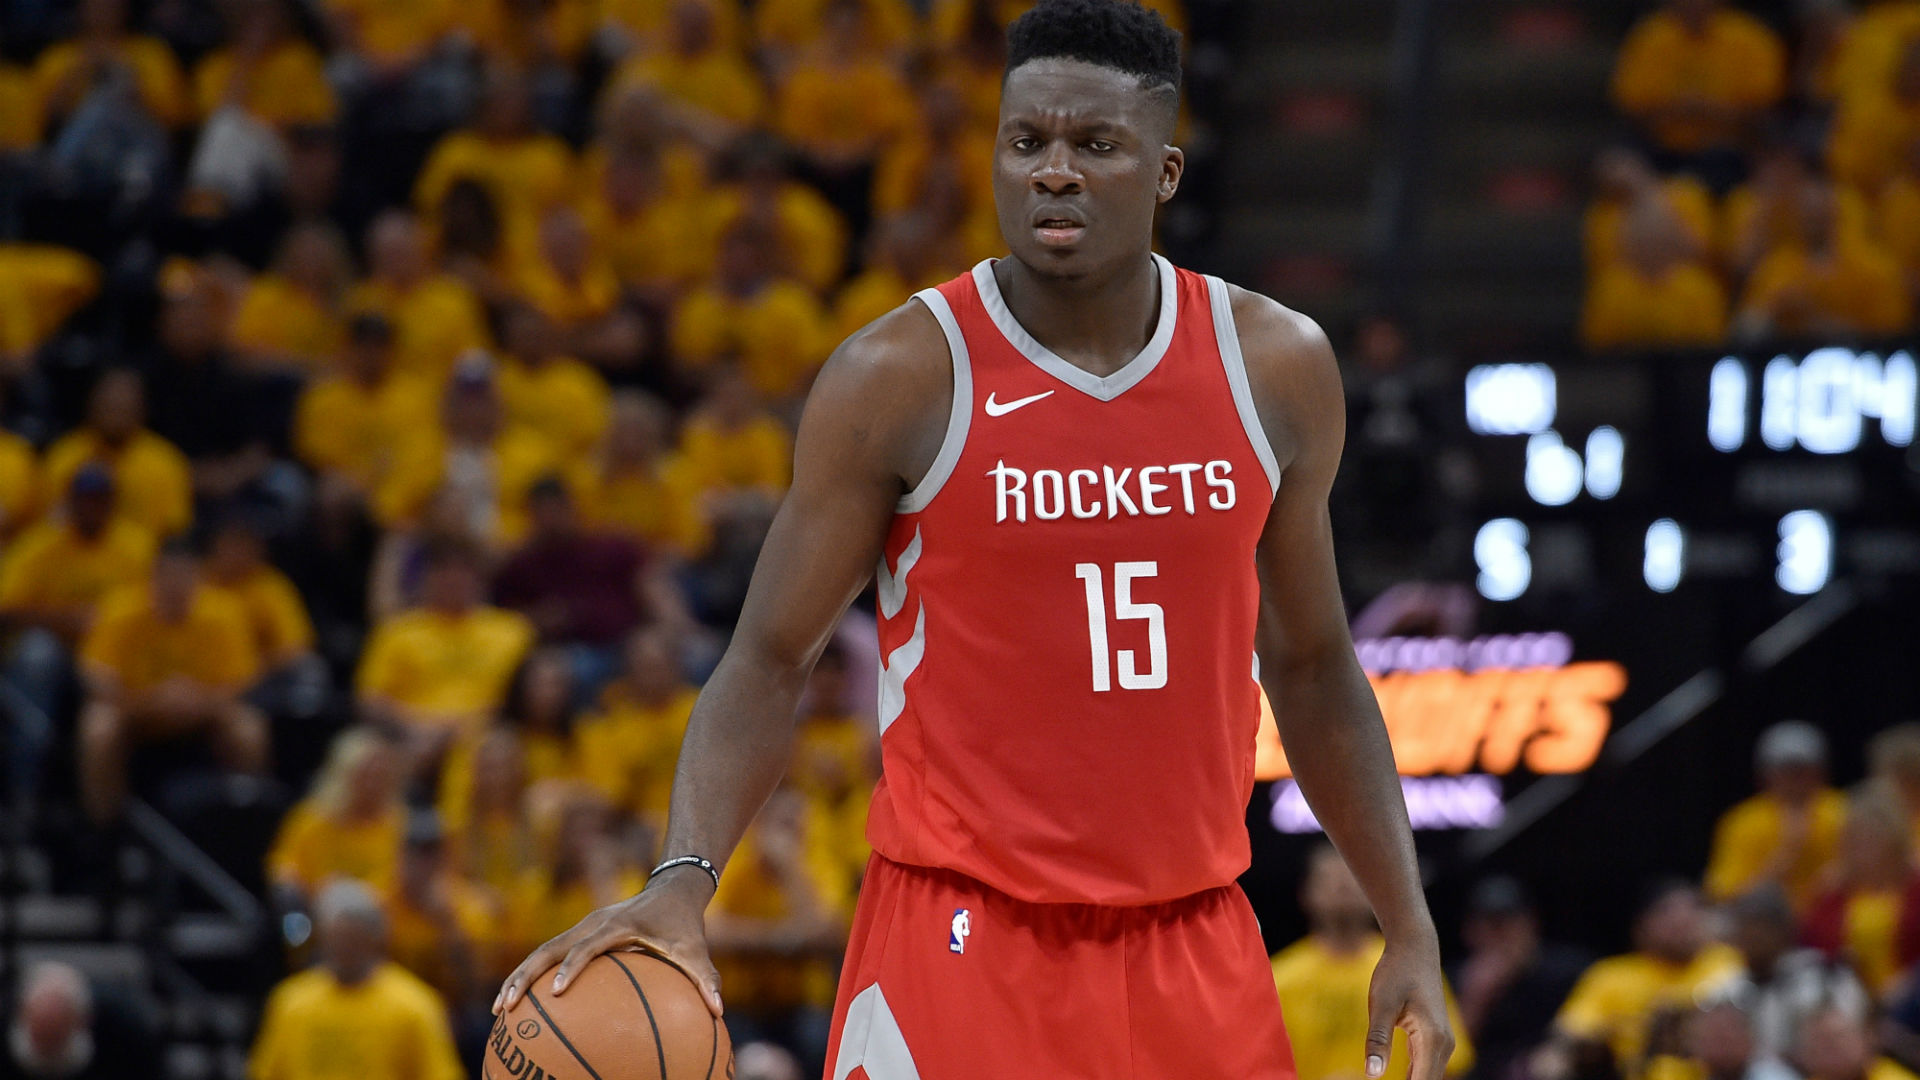 NBA free agency rumors: Clint Capela turned down 5-year, $85 million offer from Rockets